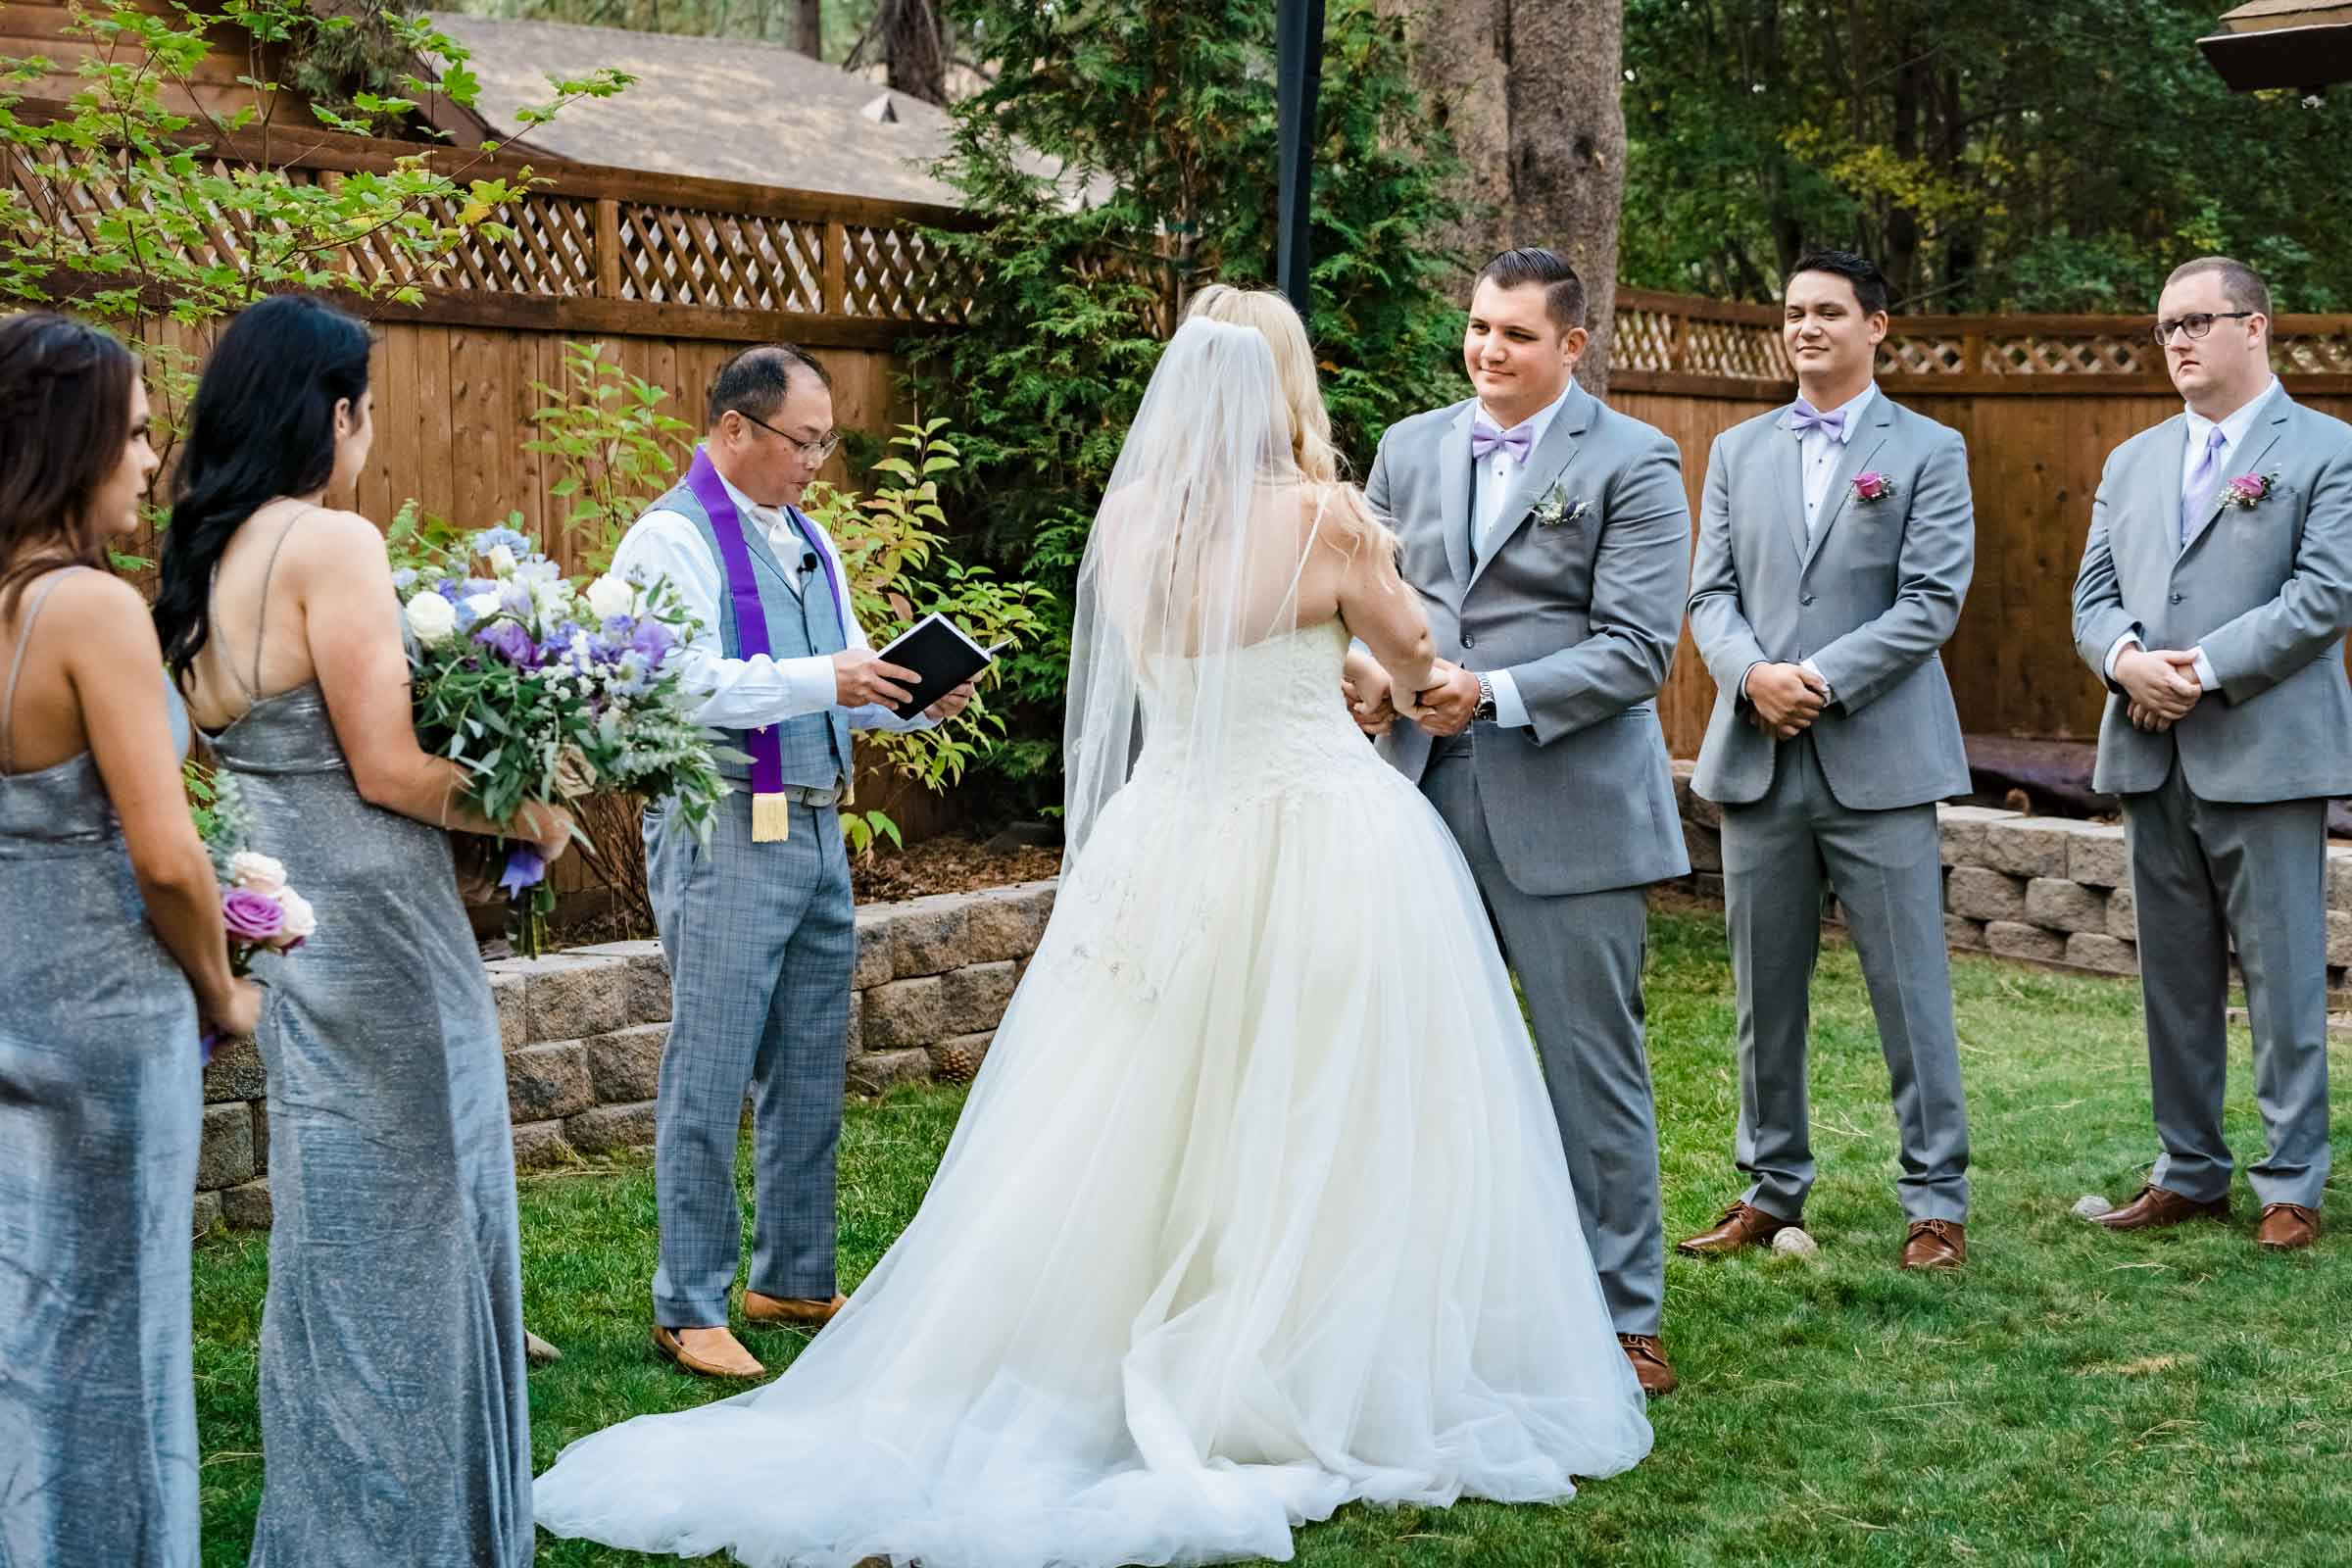 Elopement wedding ceremony in South Lake Tahoe